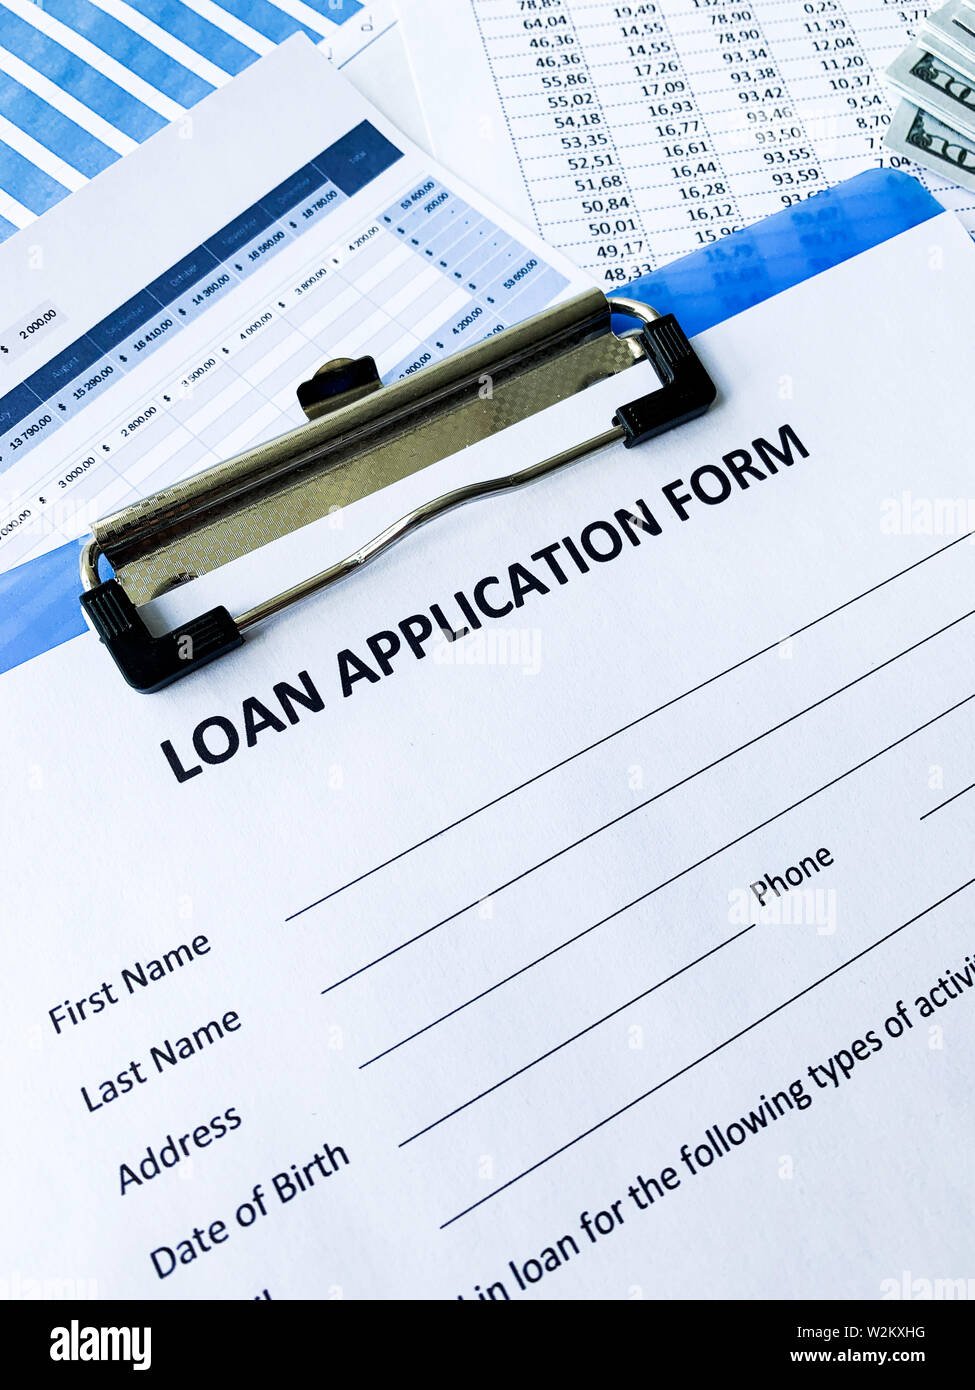 Loan application form document with graph on table - Stock Image